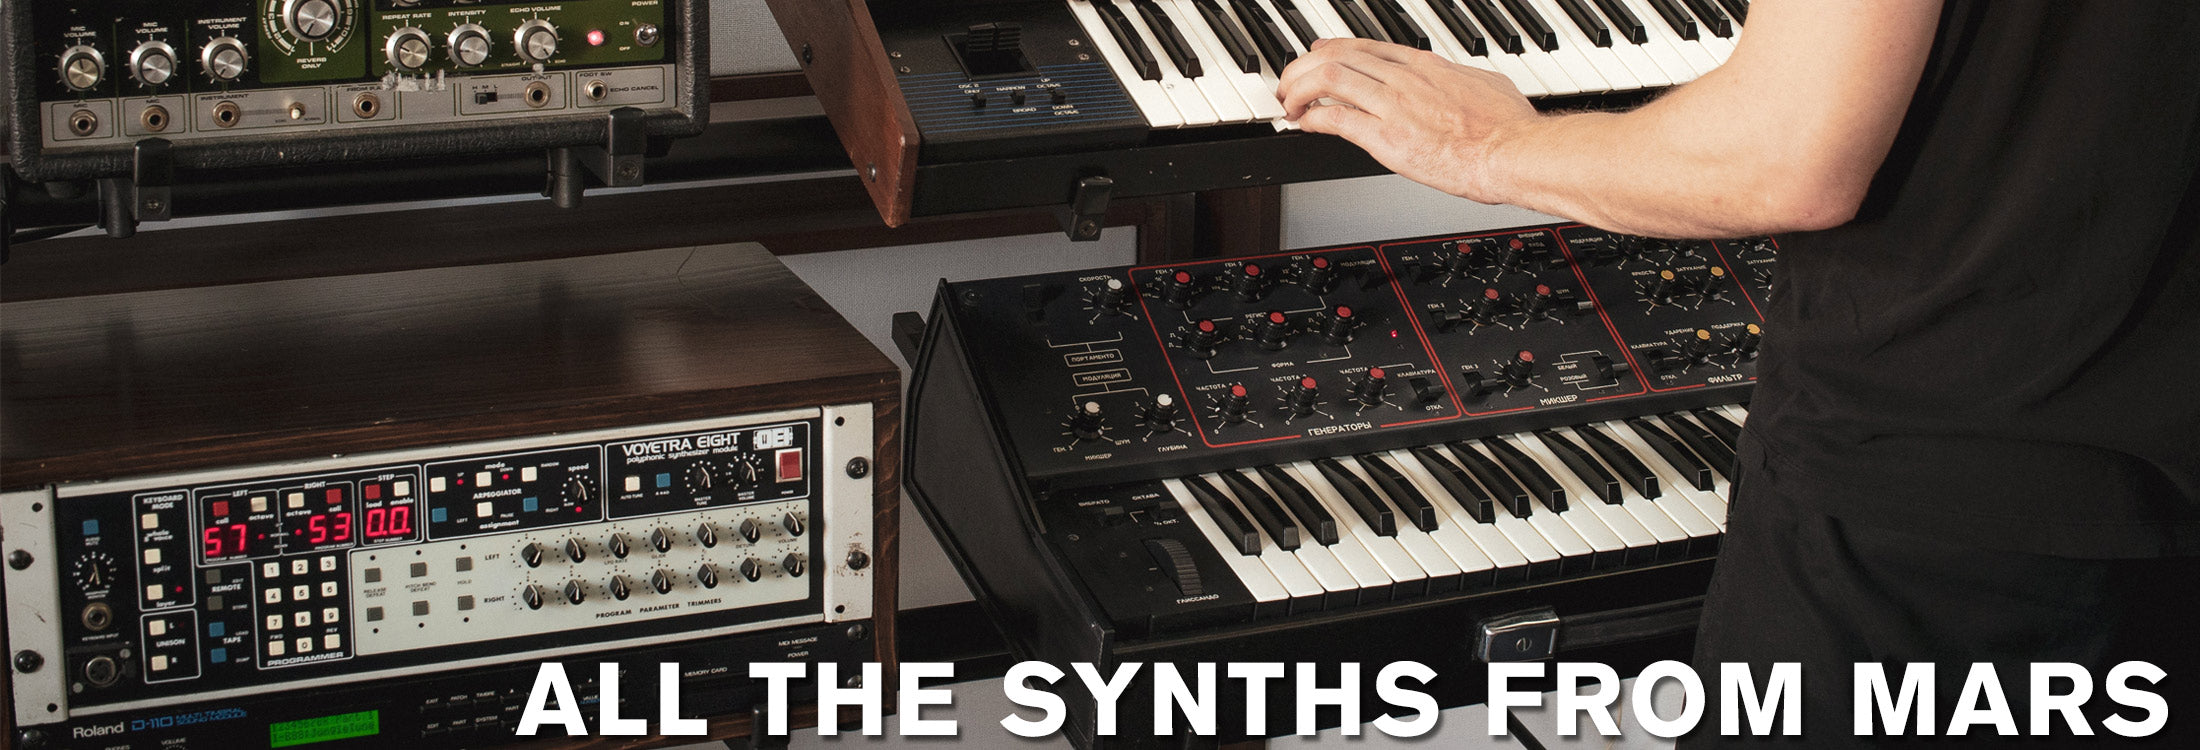 all-the-synths